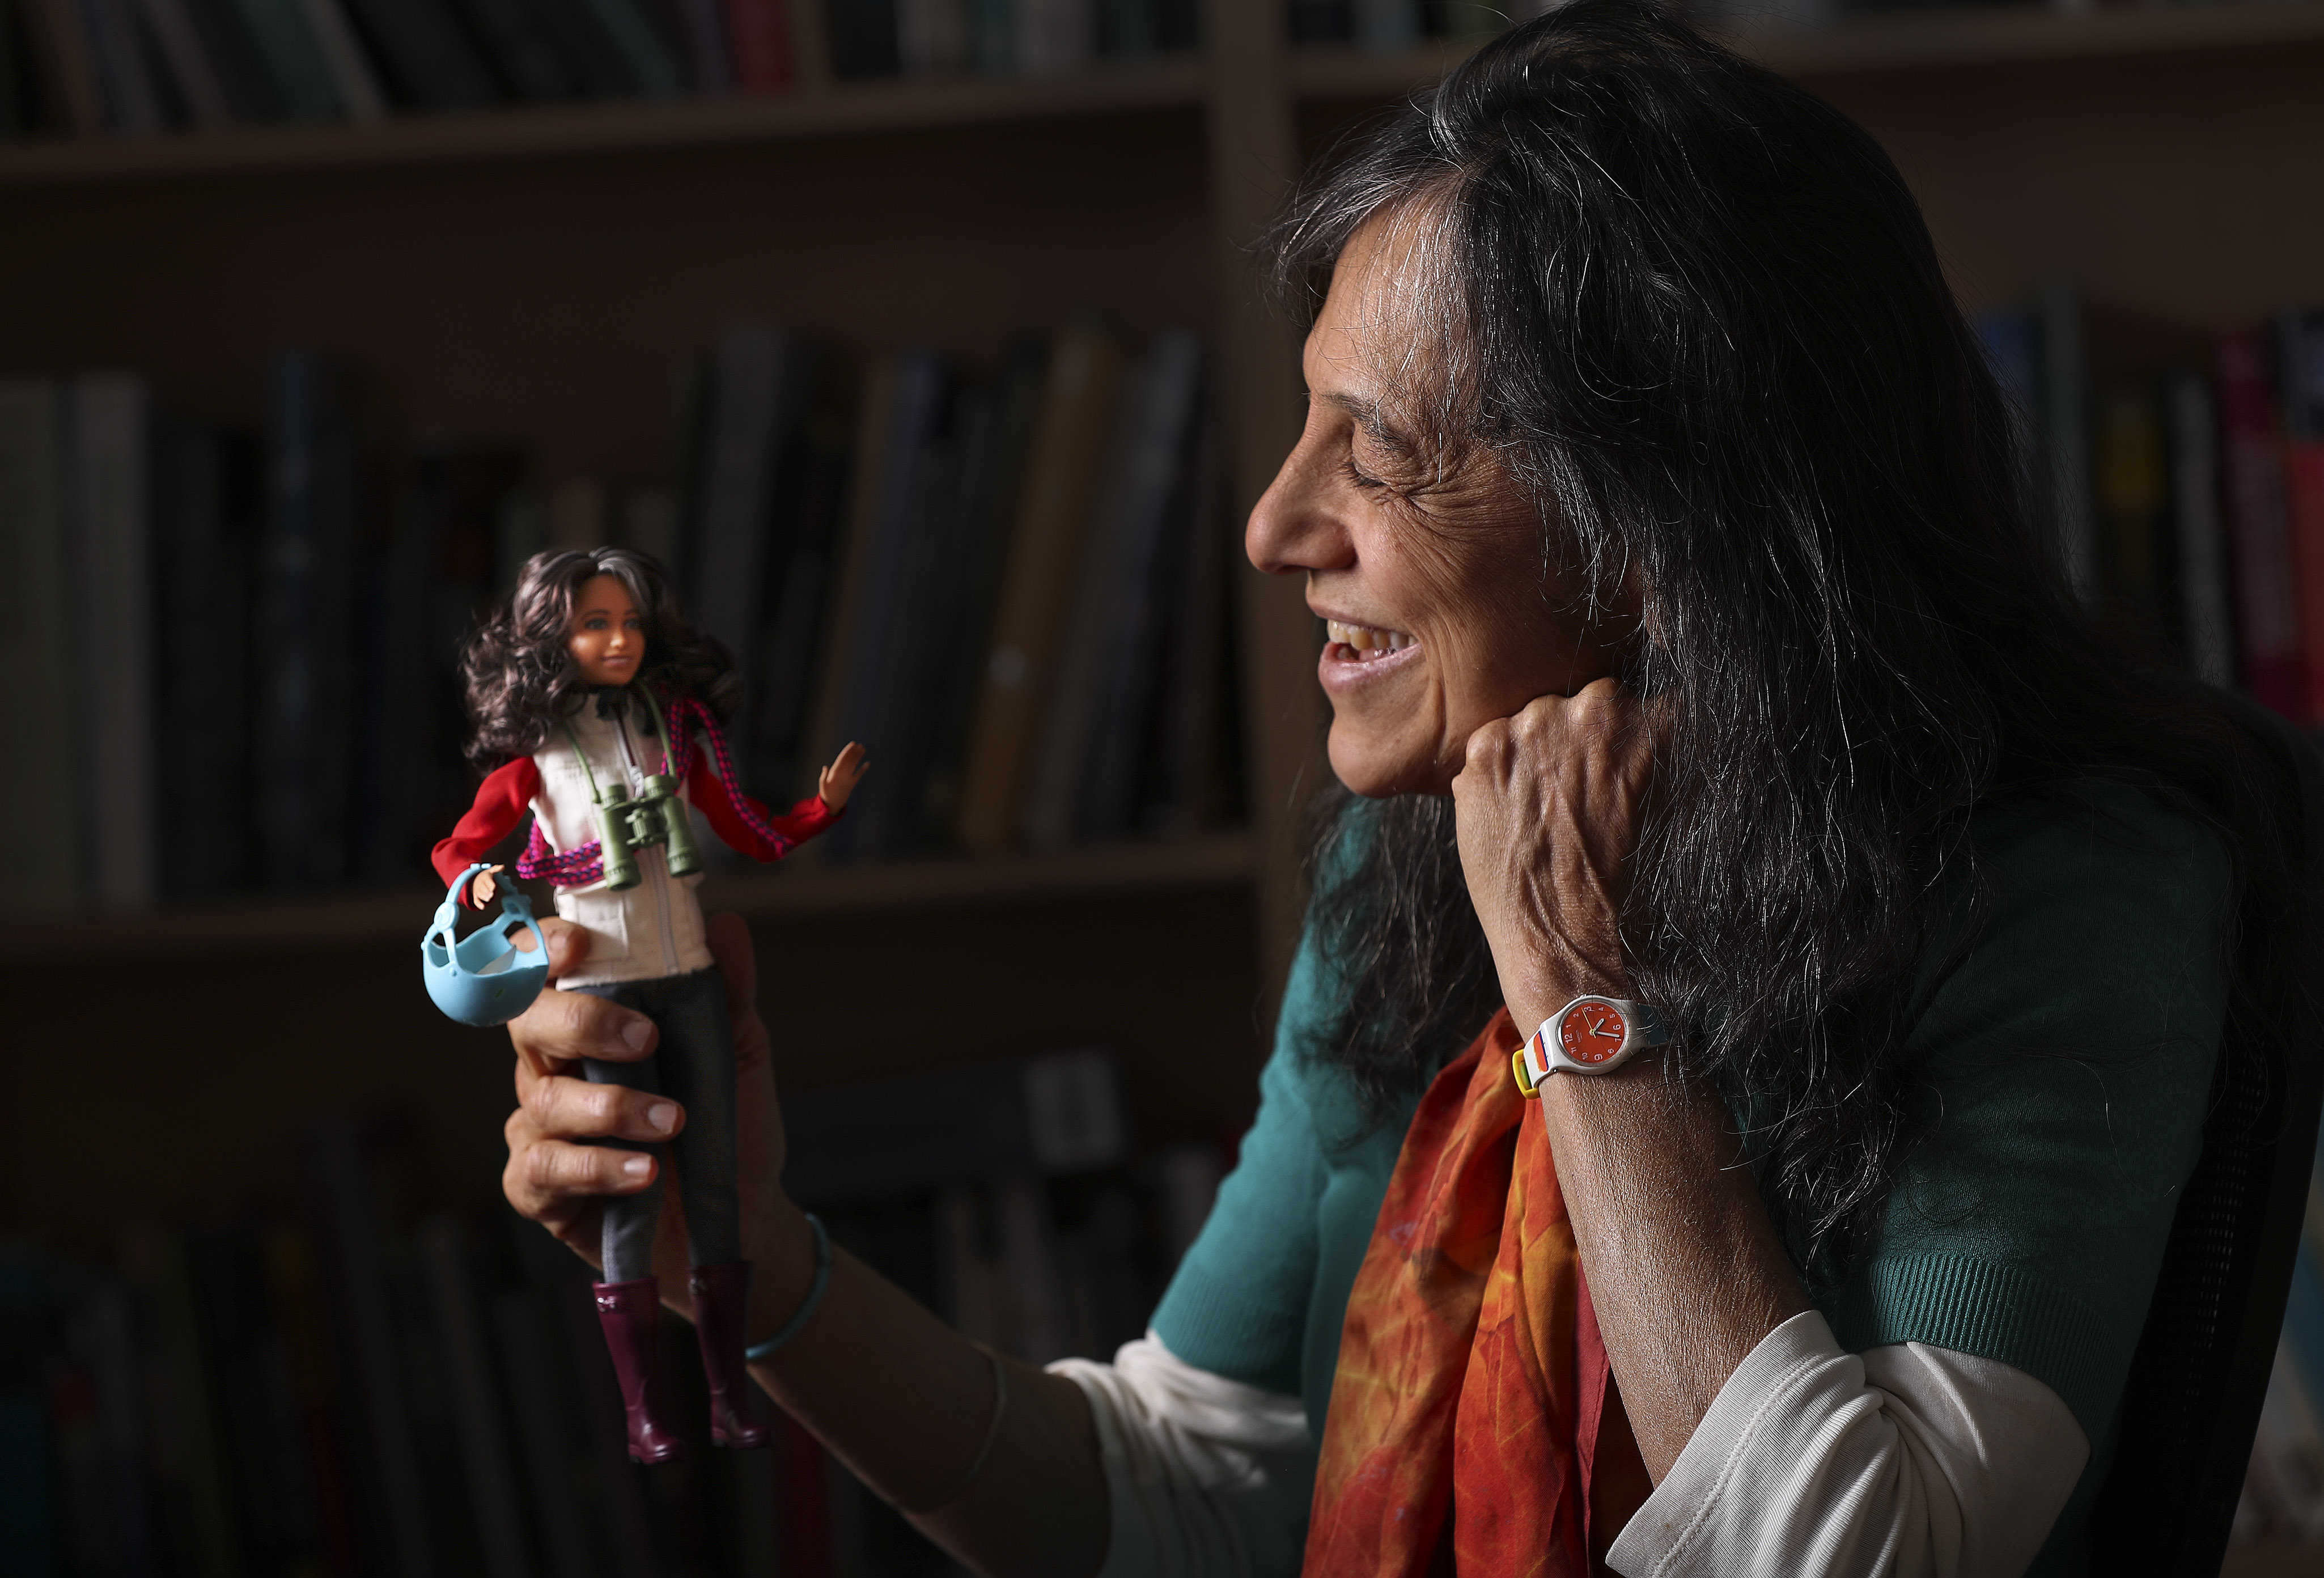 """University of Utah forest ecologist Nalini Nadkarni holds a one-of-a-kind Barbie doll in Salt Lake City on Tuesday, Dec. 3, 2019, that was made in her likeness by Mattel. Nadkarni made her own dolls for years, fashioning what she called """"Treetop Barbies"""" from thrift store finds and handmade accessories."""